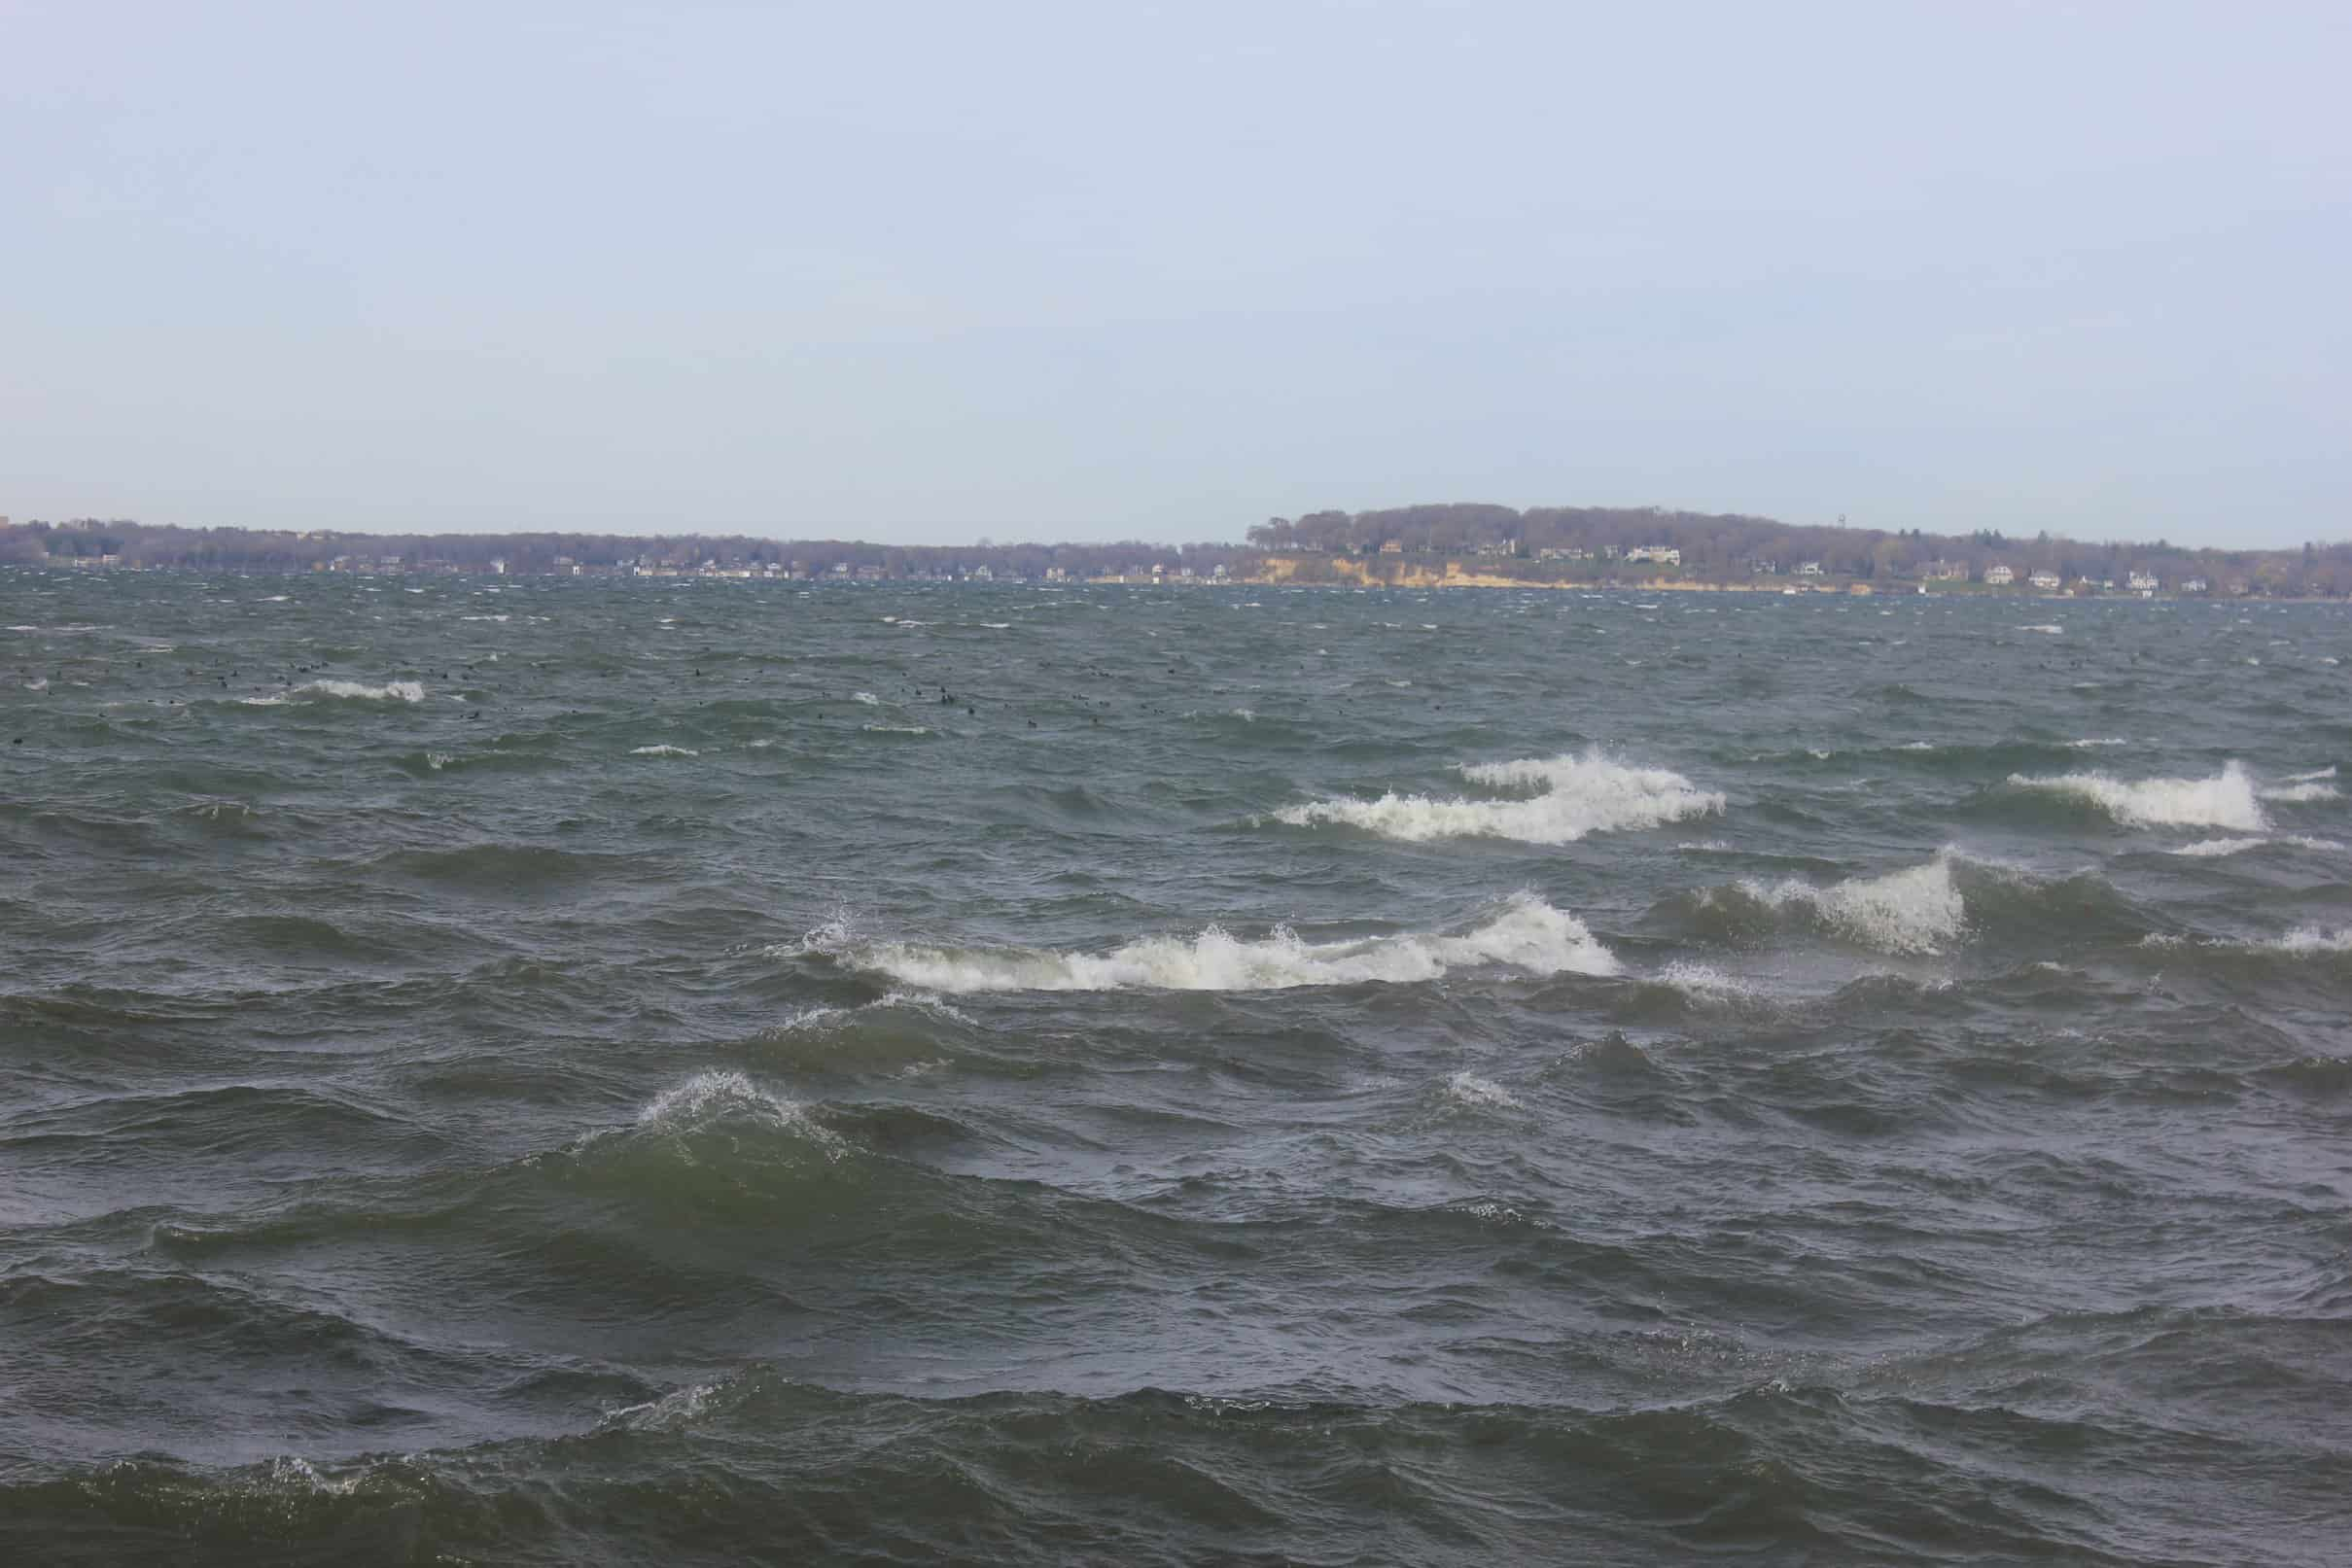 A Choppy Lake on a Windy Day